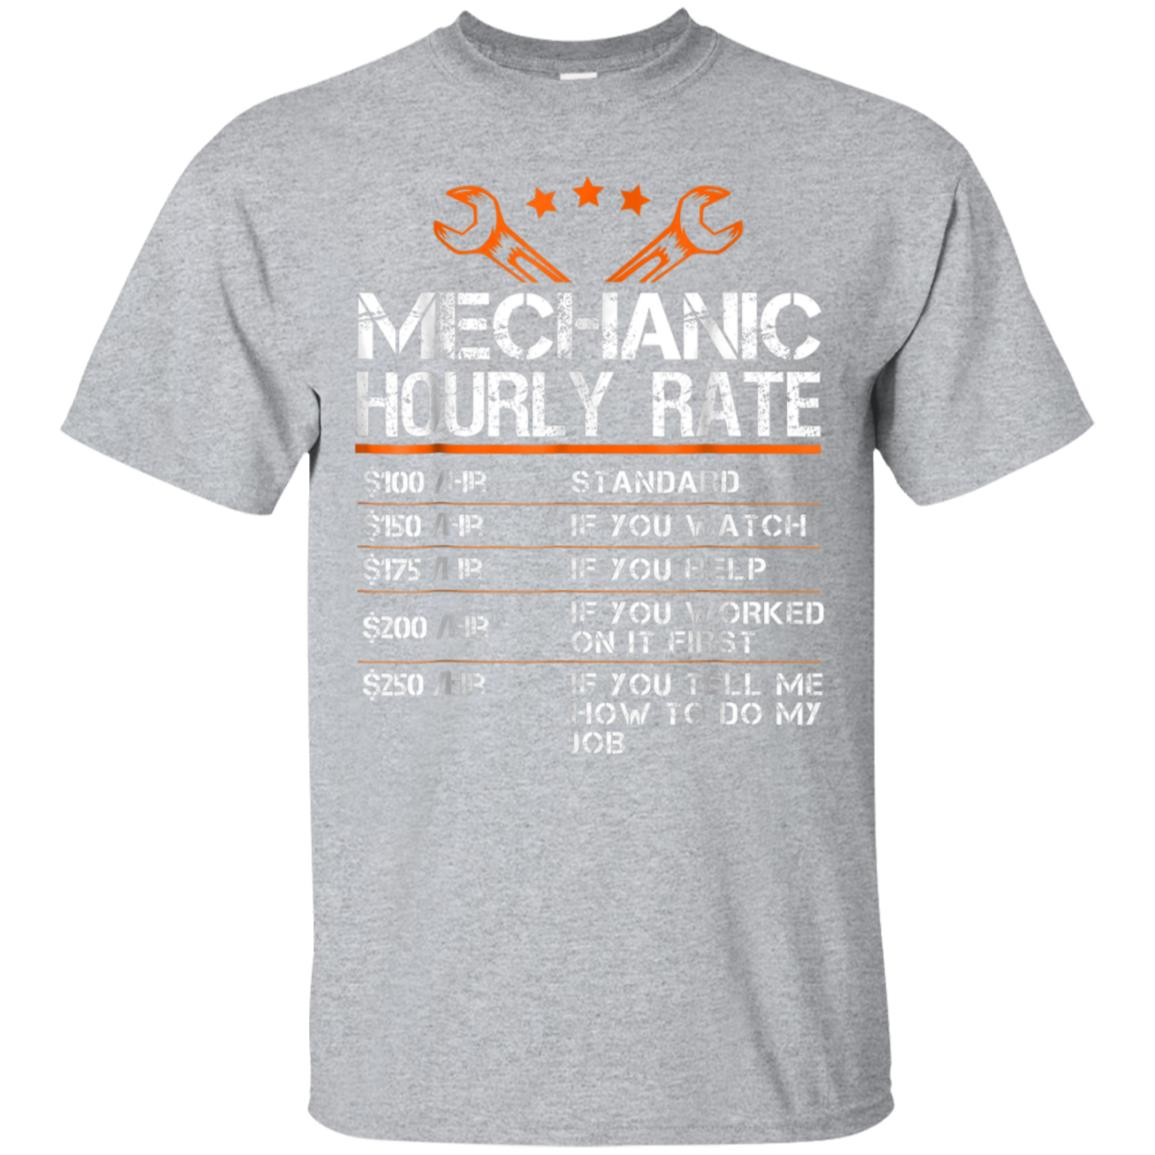 Funny Mechanic Hourly Rate Gift Shirt Labor Rates T-Shirt 99promocode